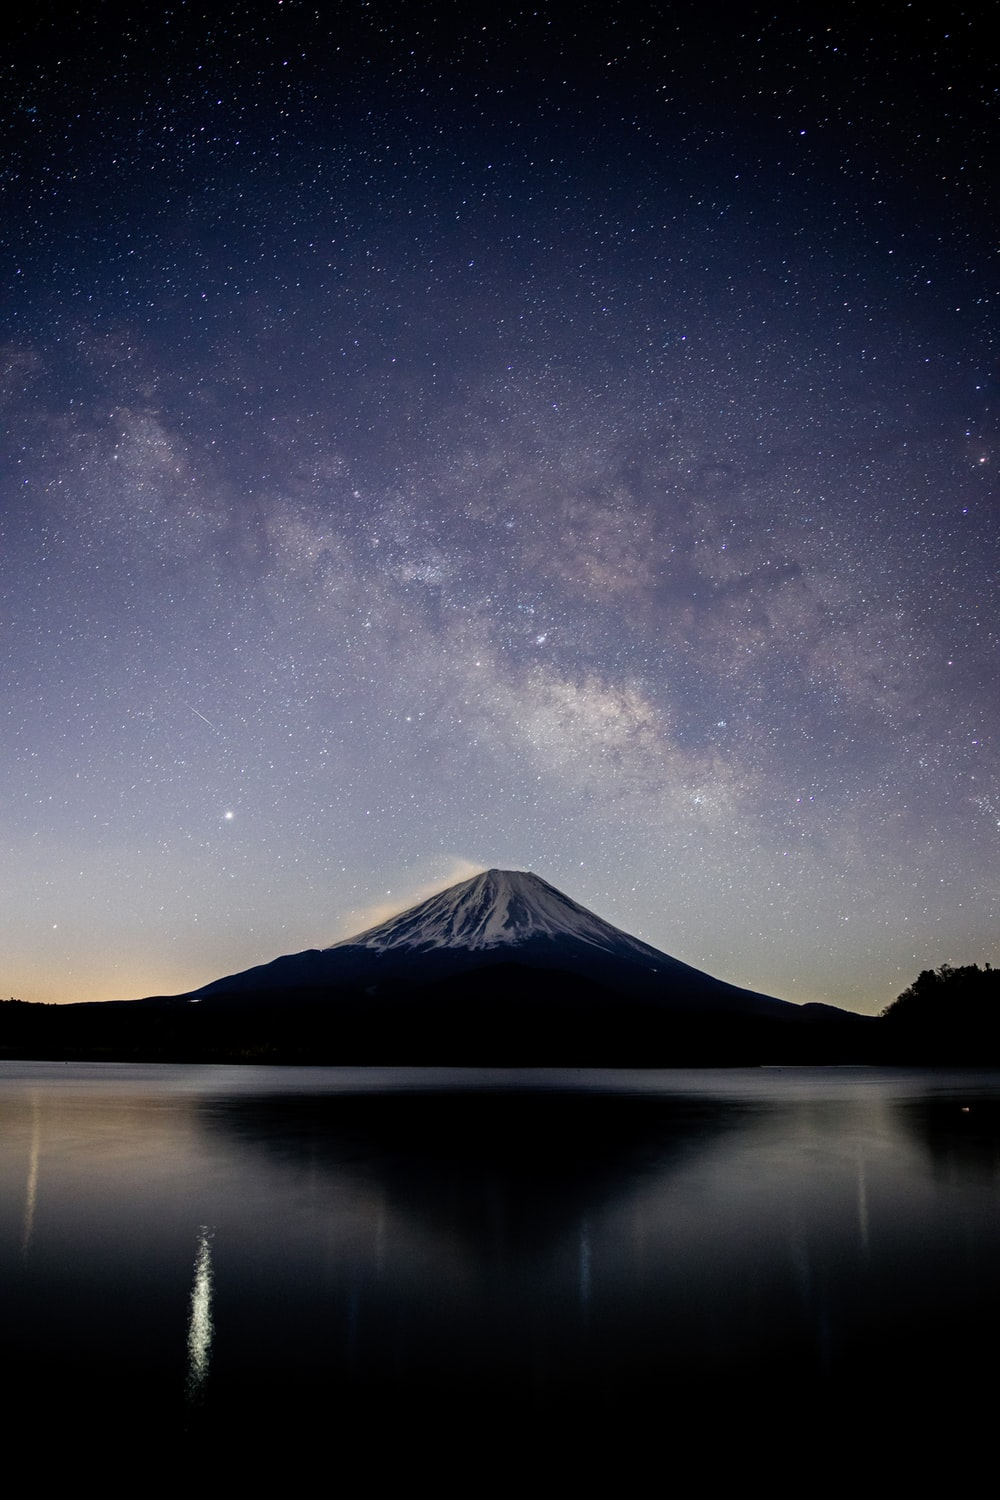 snow covered mountain near lake under starry night